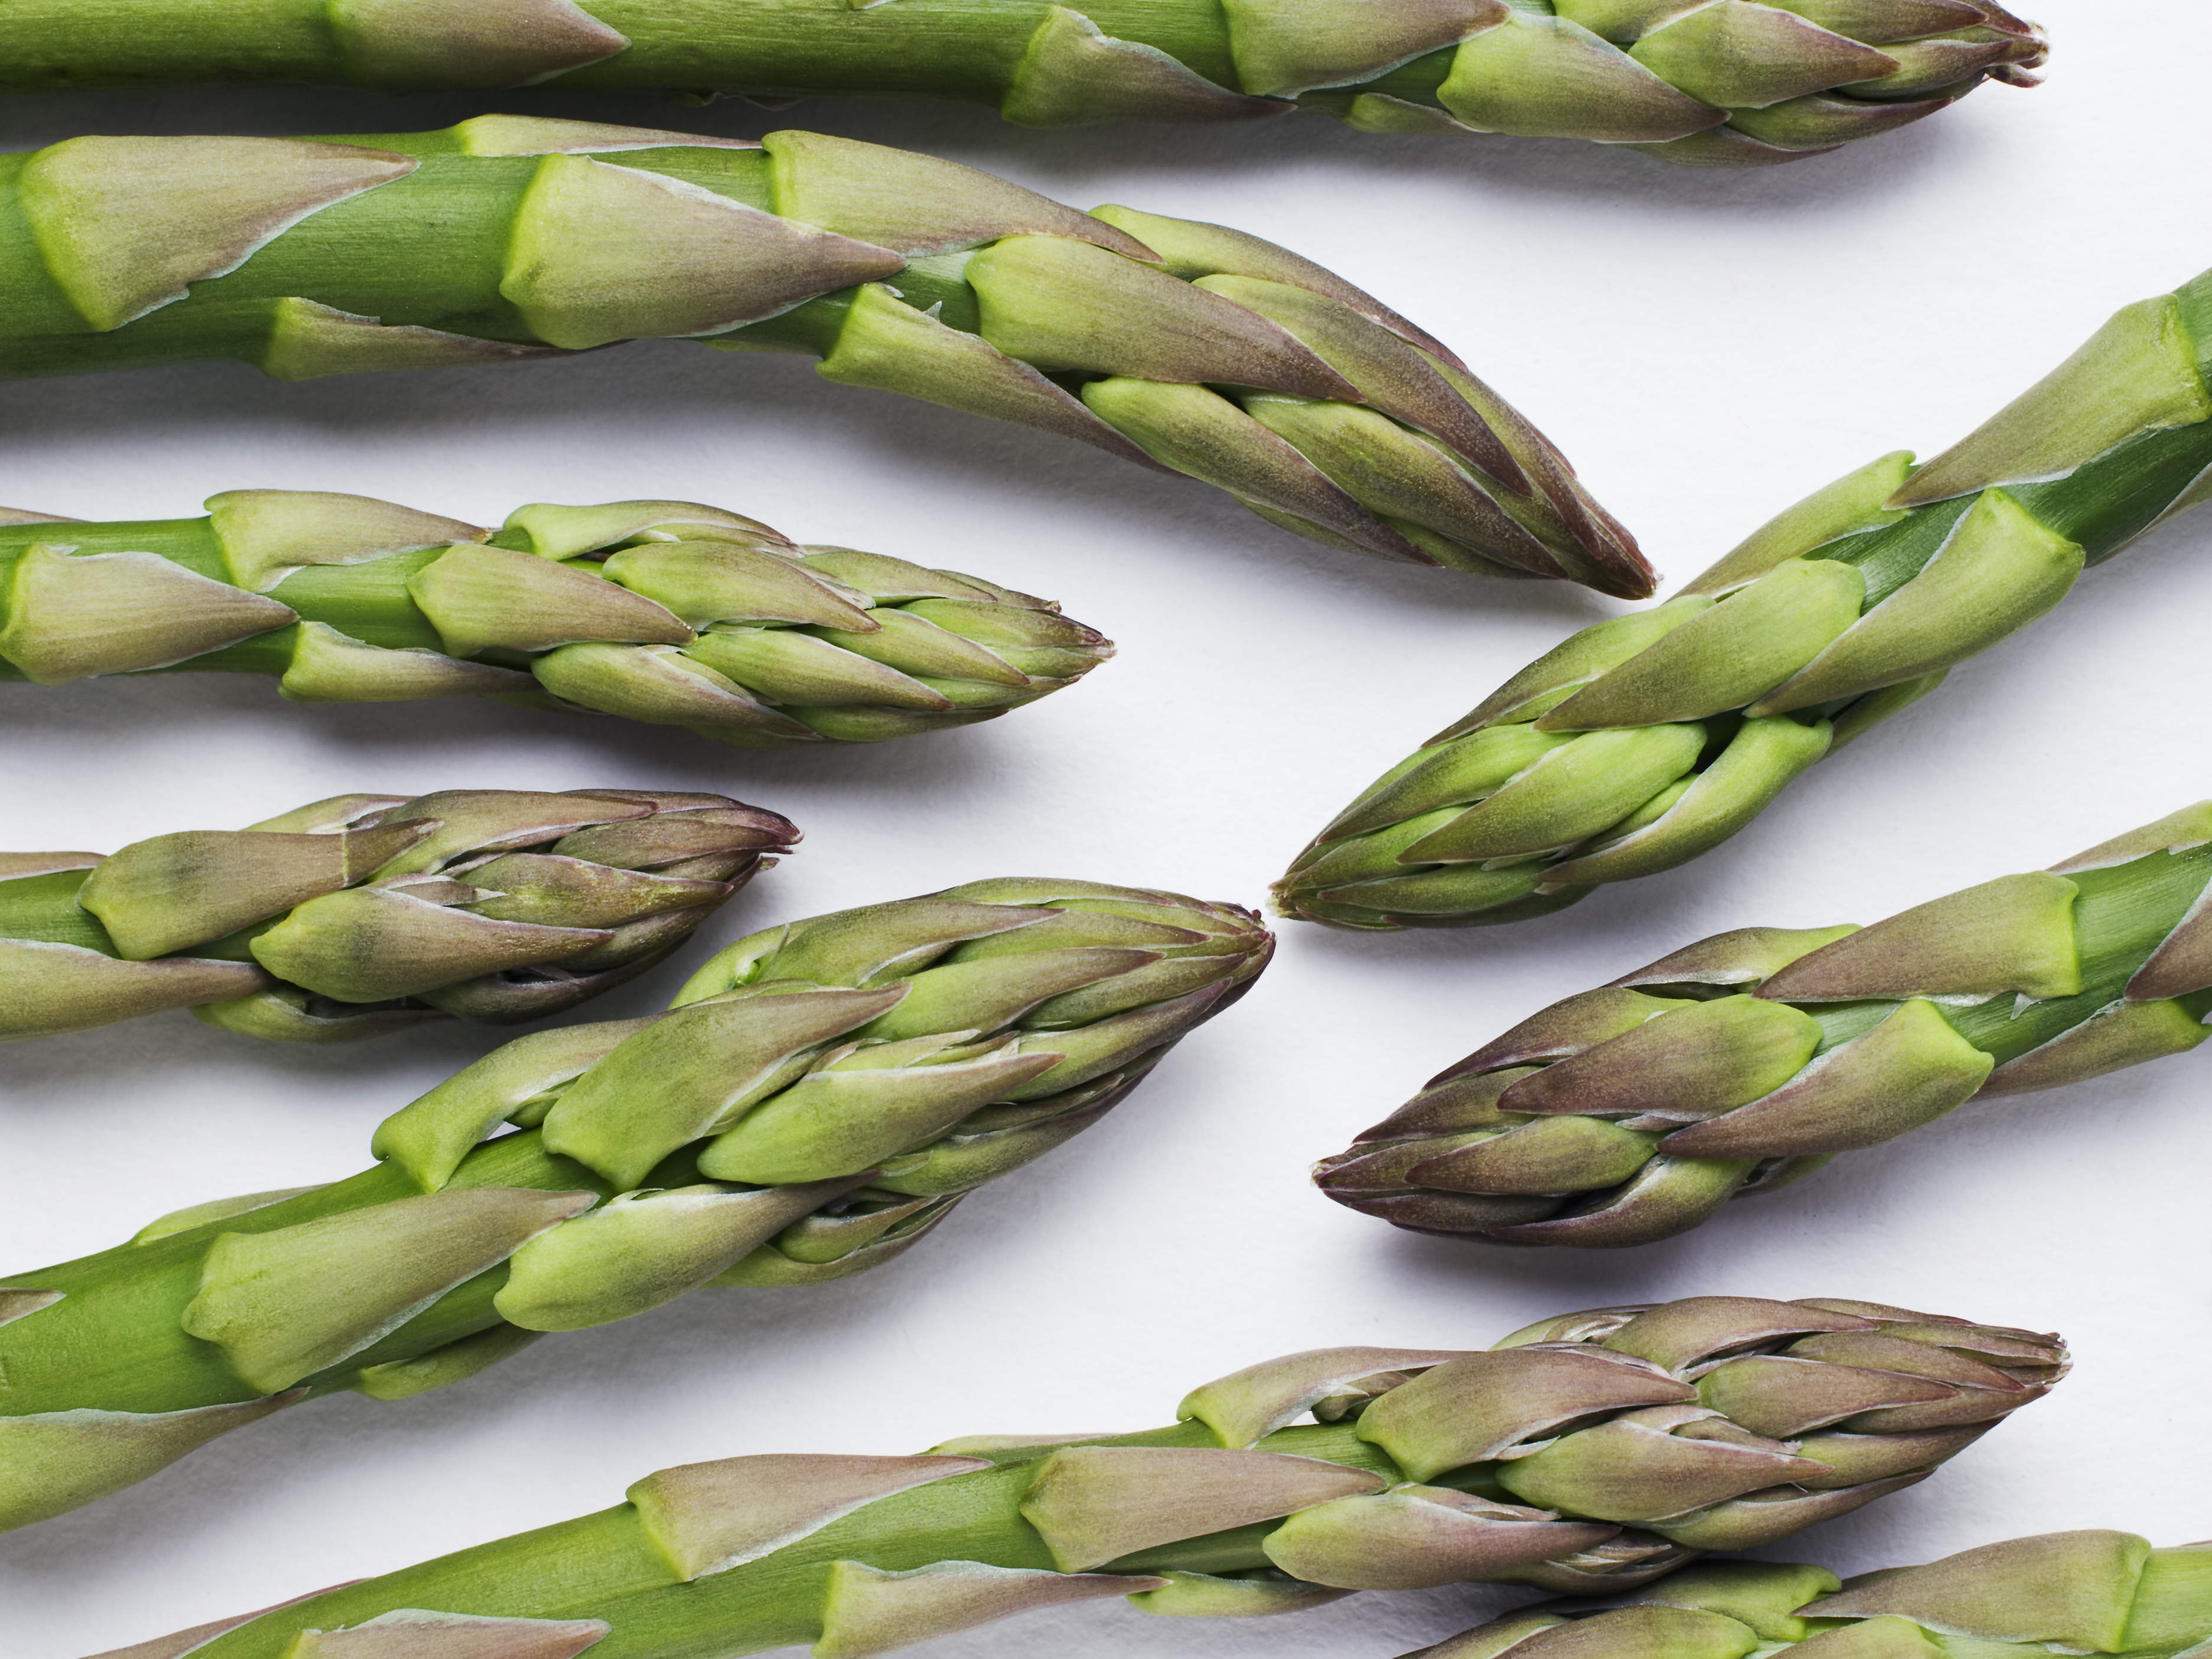 10 Reasons Why You Should Eat More Asparagus - Health